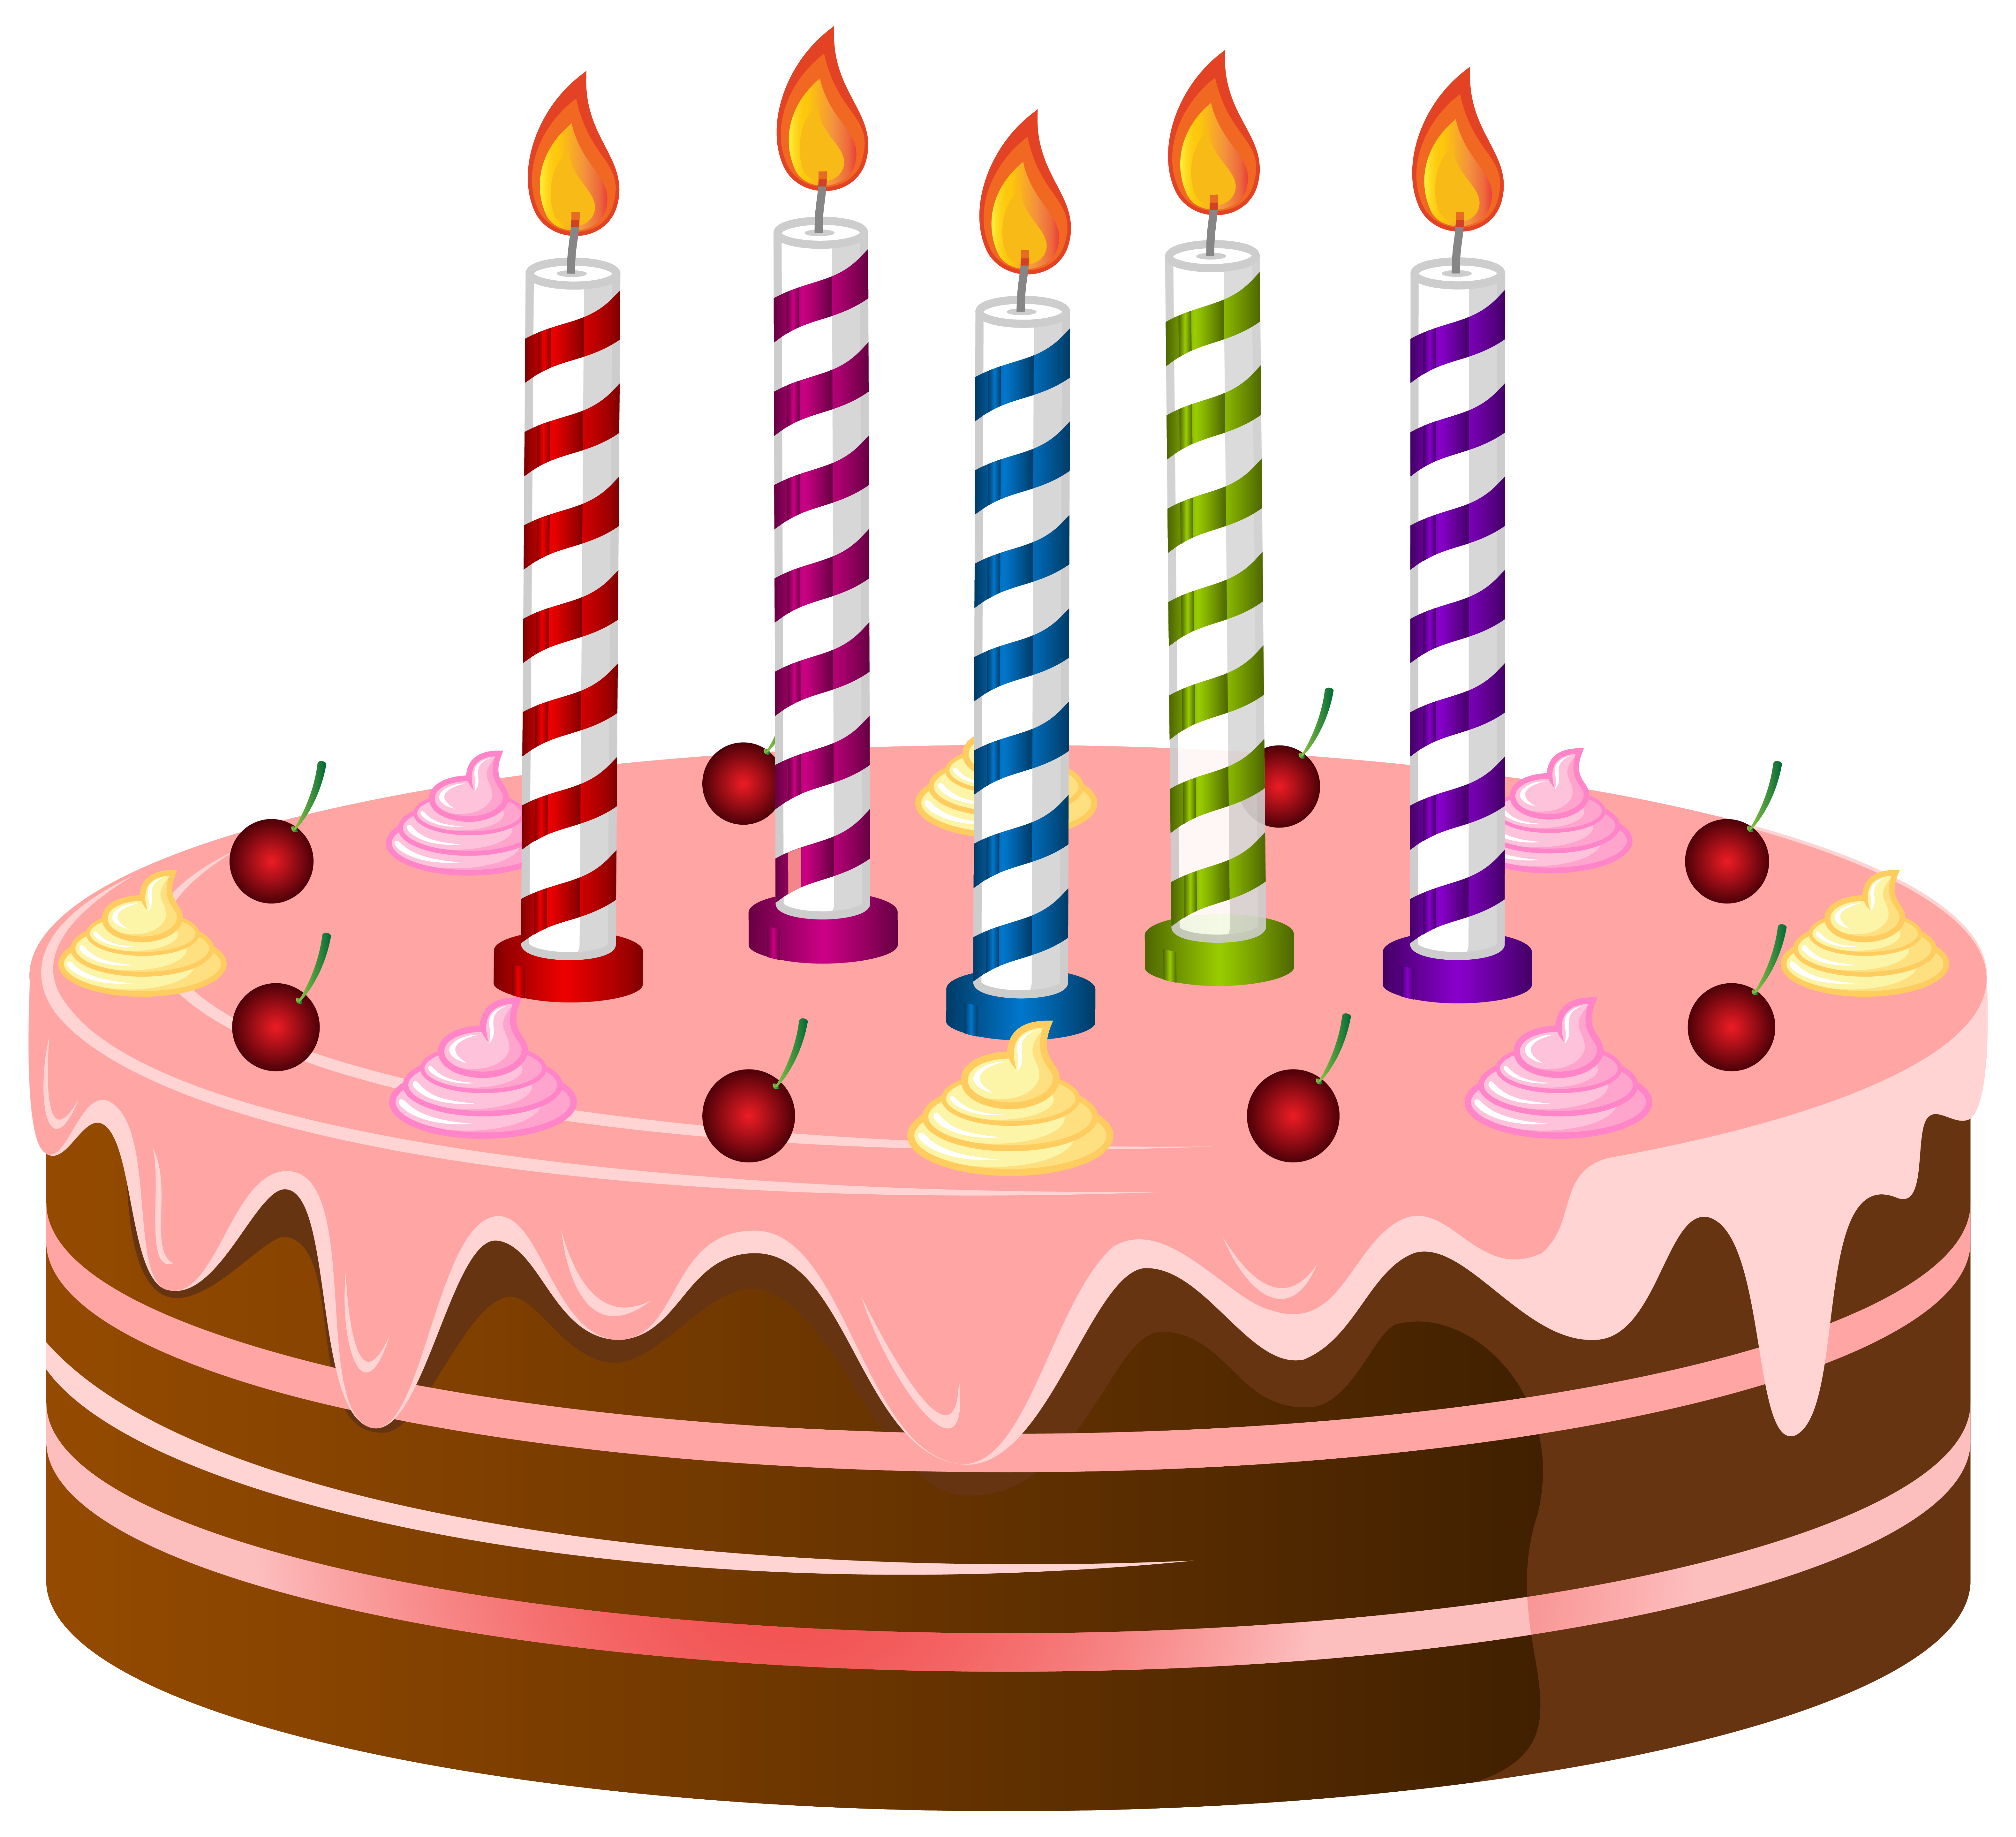 Birthday png clip art. Cake clipart